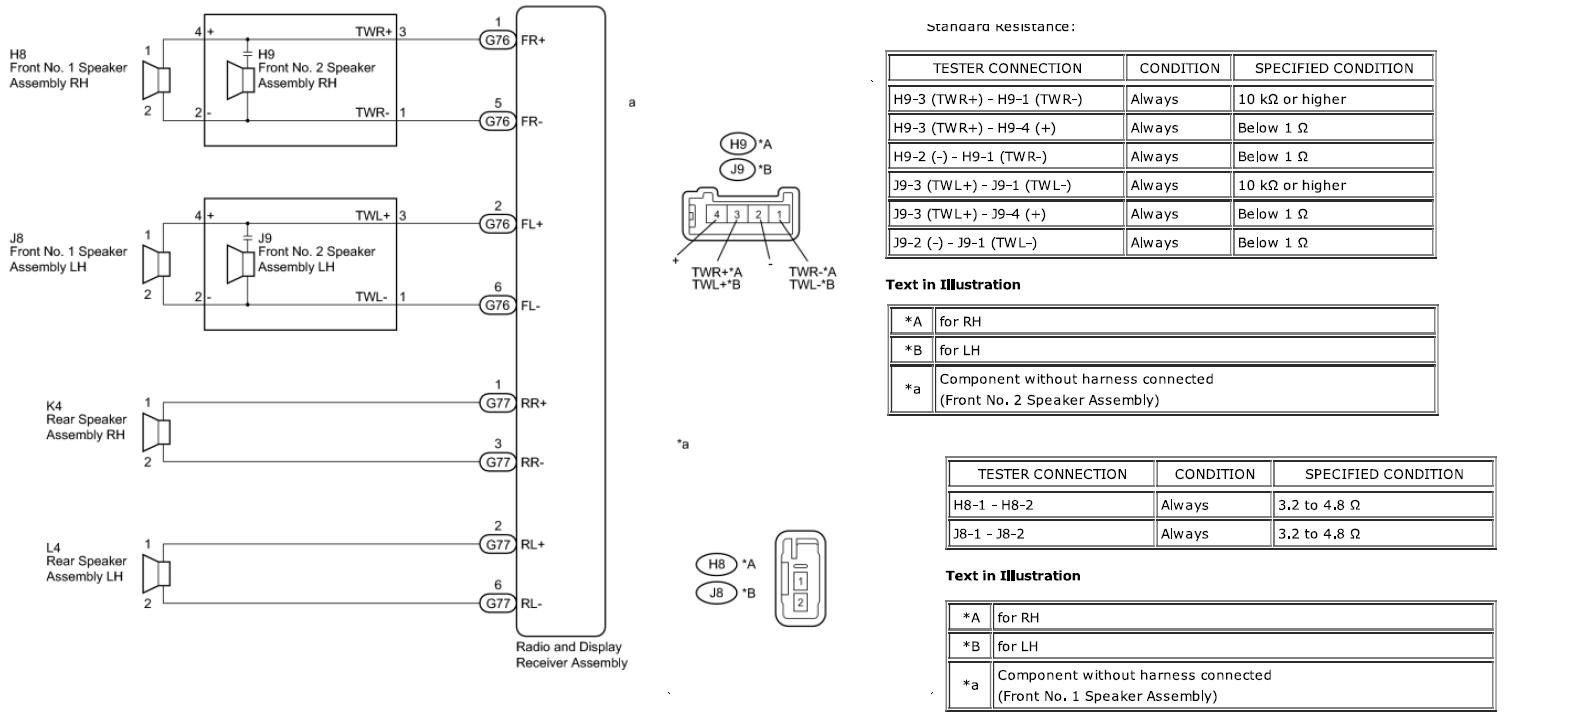 pioneer deh p4000ub wiring diagram efcaviation com pioneer fh-x700bt wiring harness diagram at edmiracle.co